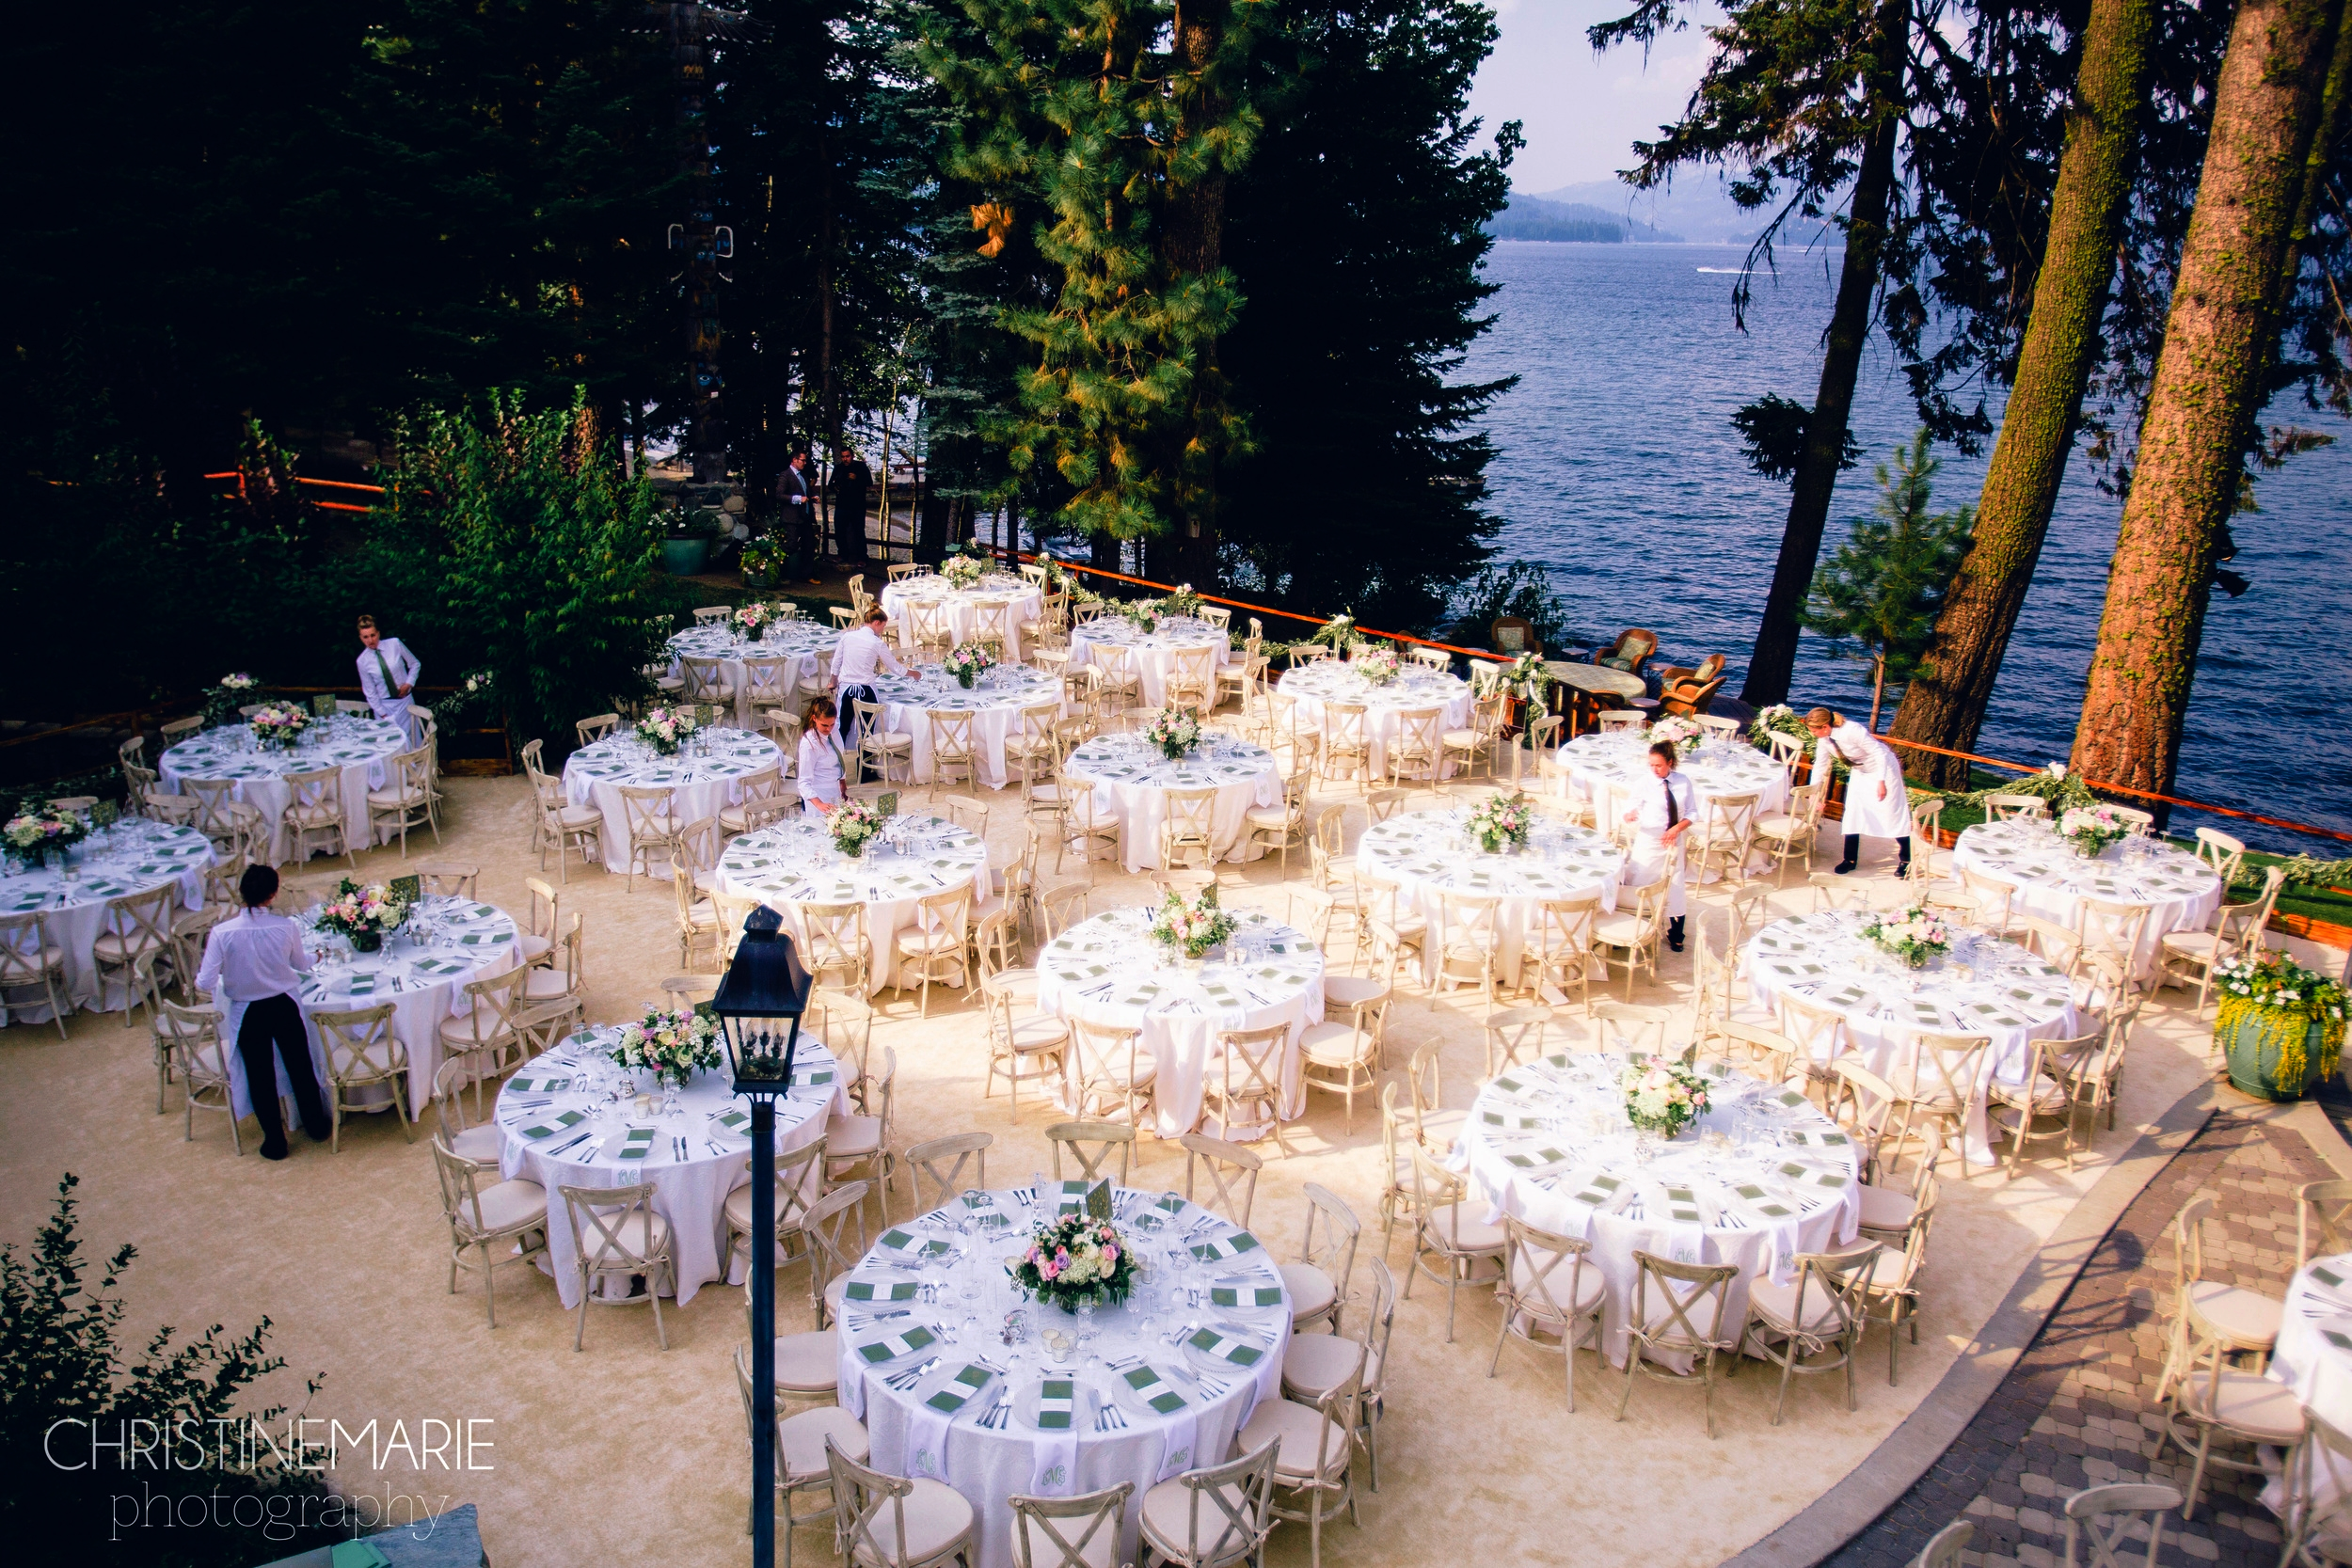 Working with Taylor'd Events and photographer Christine Marie,  Judith McQueen Entertaining's staff sets up a beautiful wedding in McCall, ID.